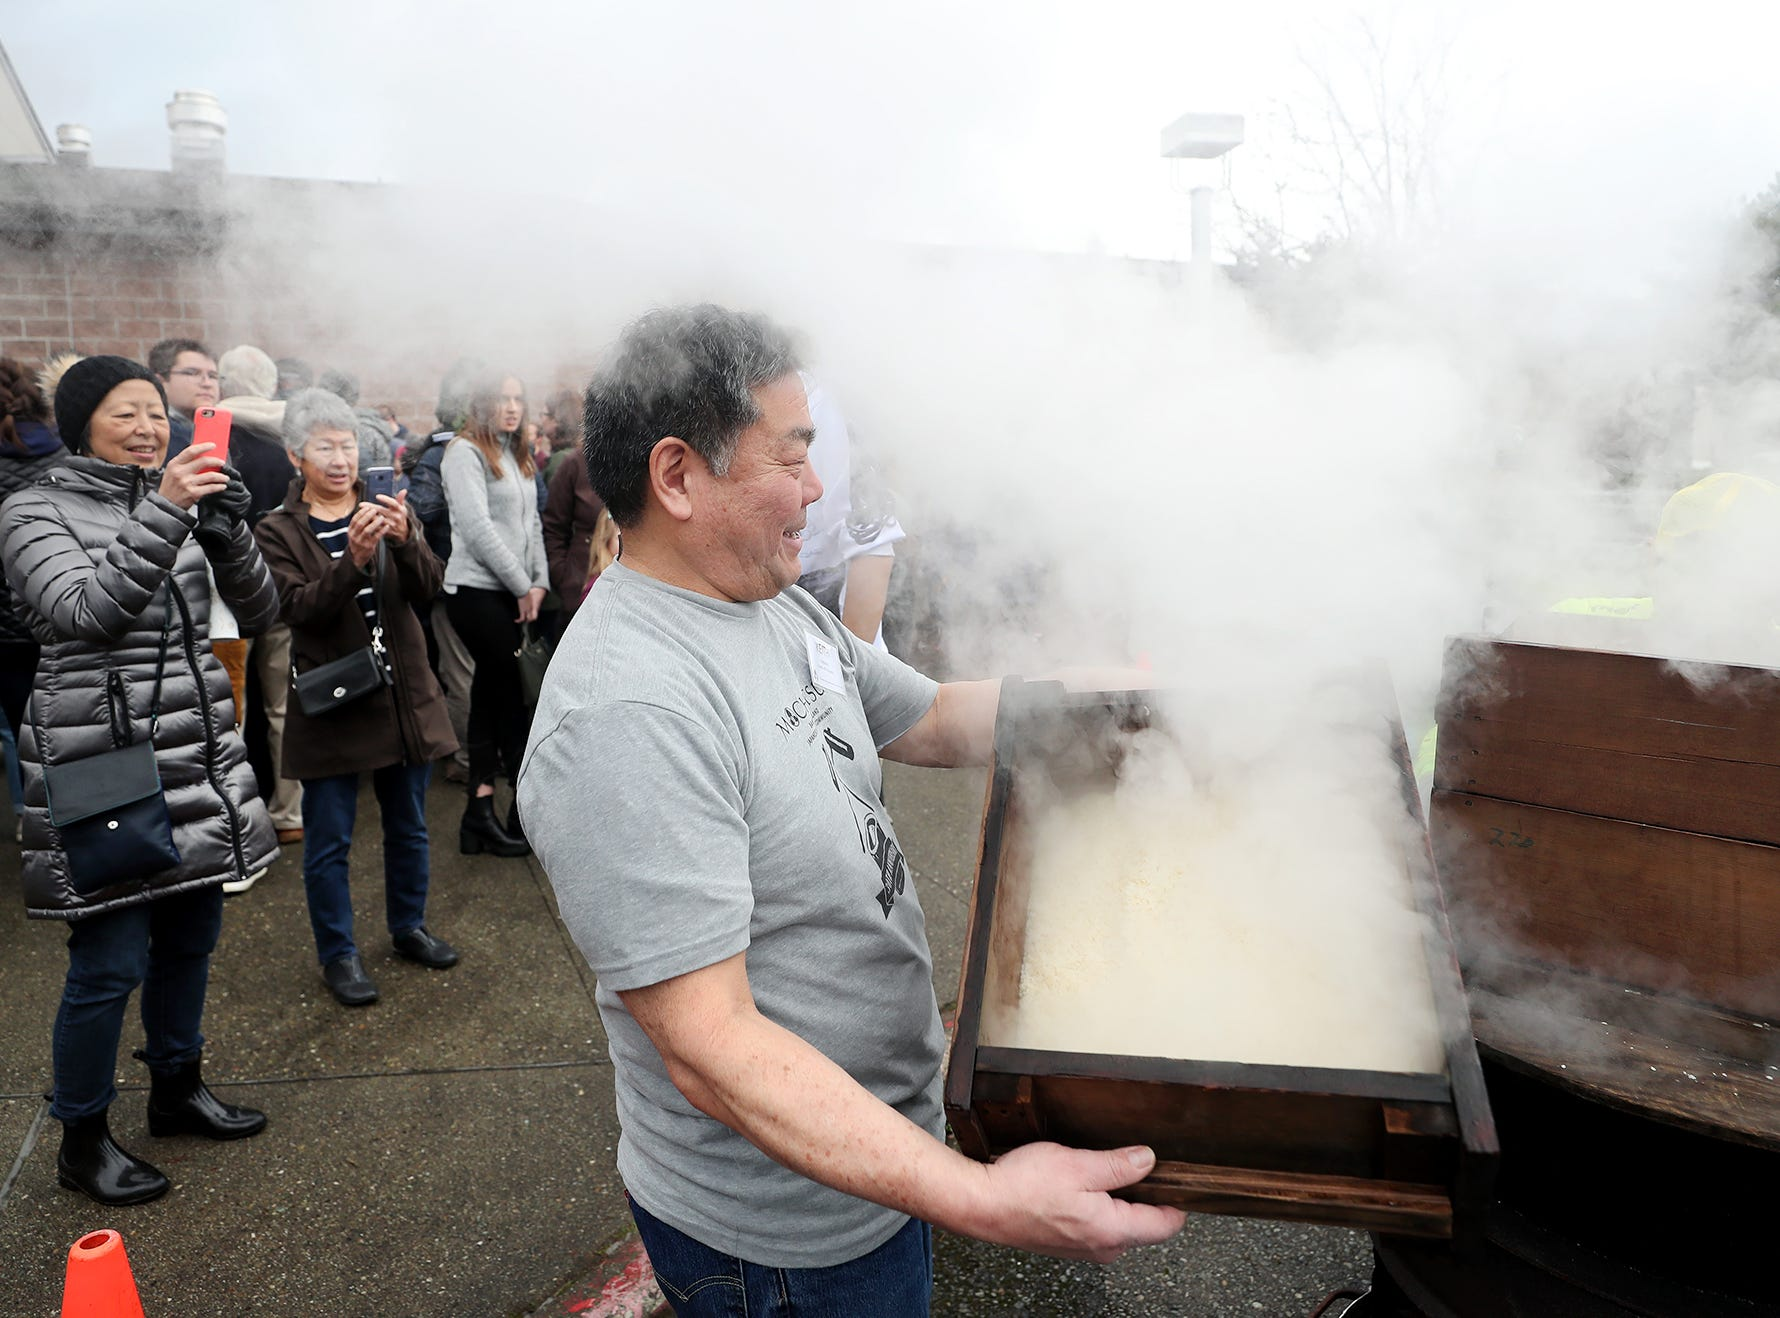 The 30th anniversary of Bainbridge Island's Japanese-American Mochi Tsuki celebration was held at an new location at the Woodward Middle School on Saturday, January, 5, 2019. Mochi Tsuki is a traditional Japanese New Year's tradition of steaming rice and pounding into a rice. Keith Uyekawa takes away cooked steam sweet rice from the wood cooker.